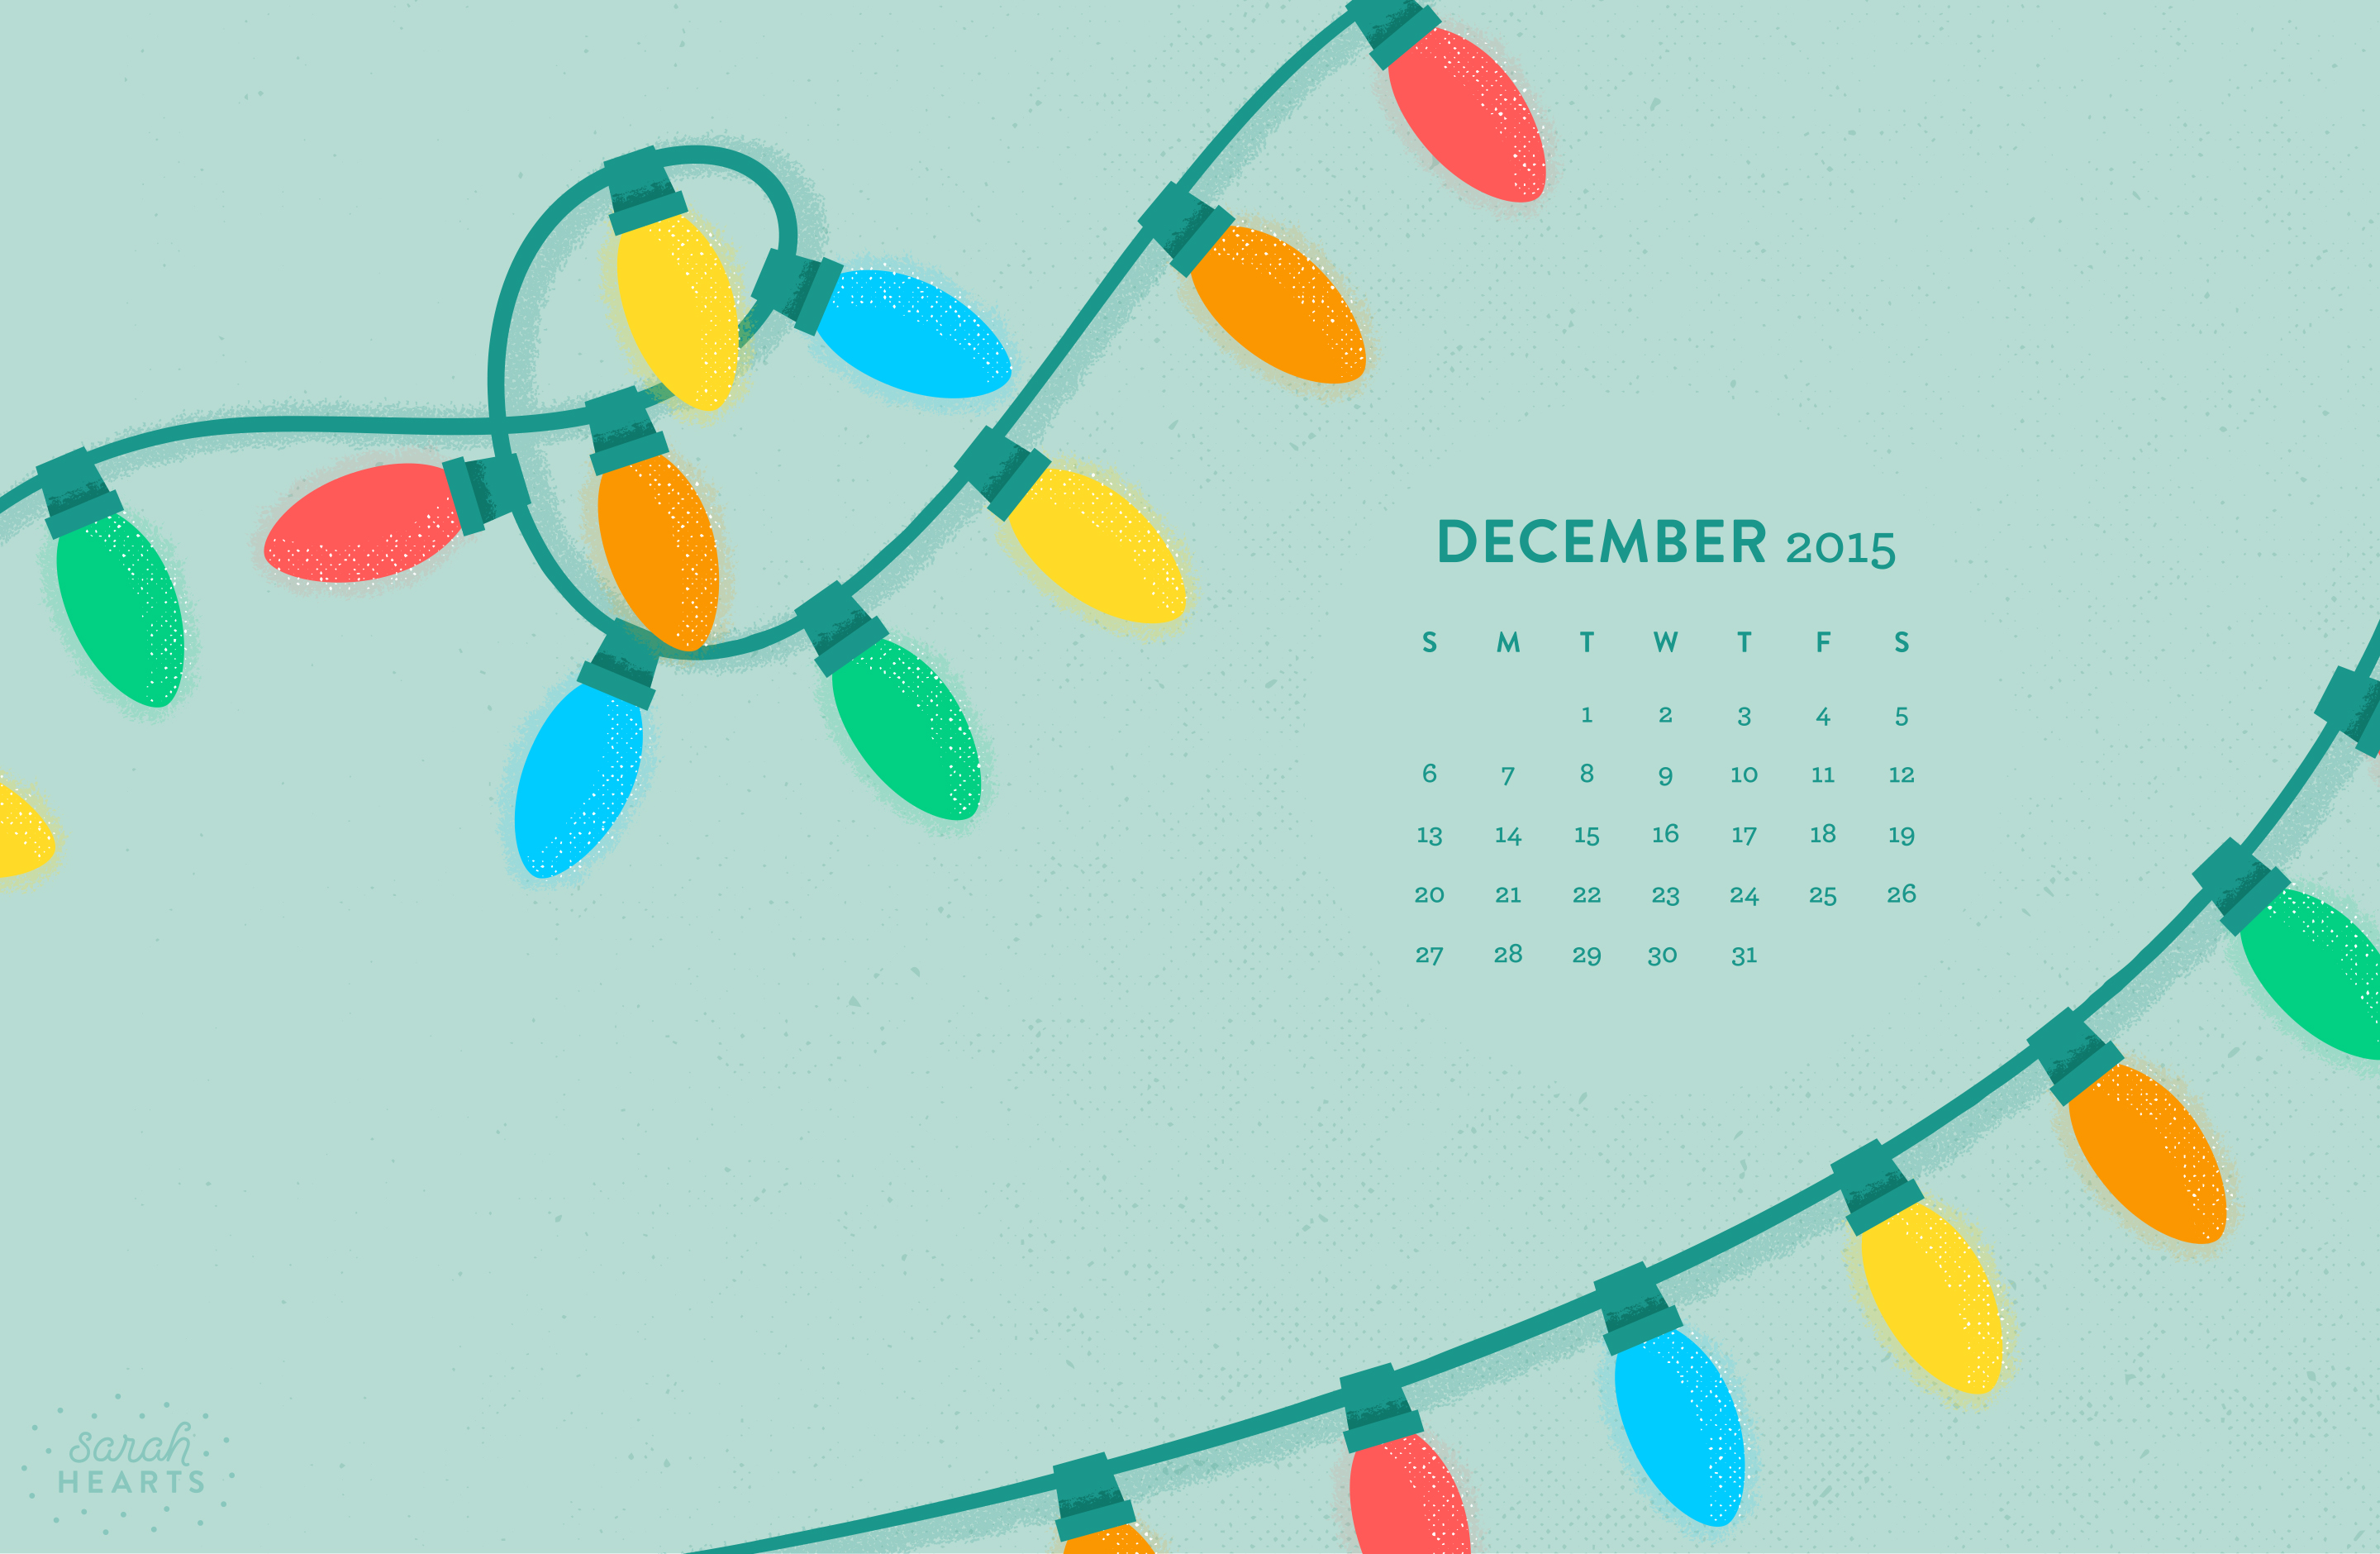 December 2015 Calendar Wallpaper Sarah Hearts